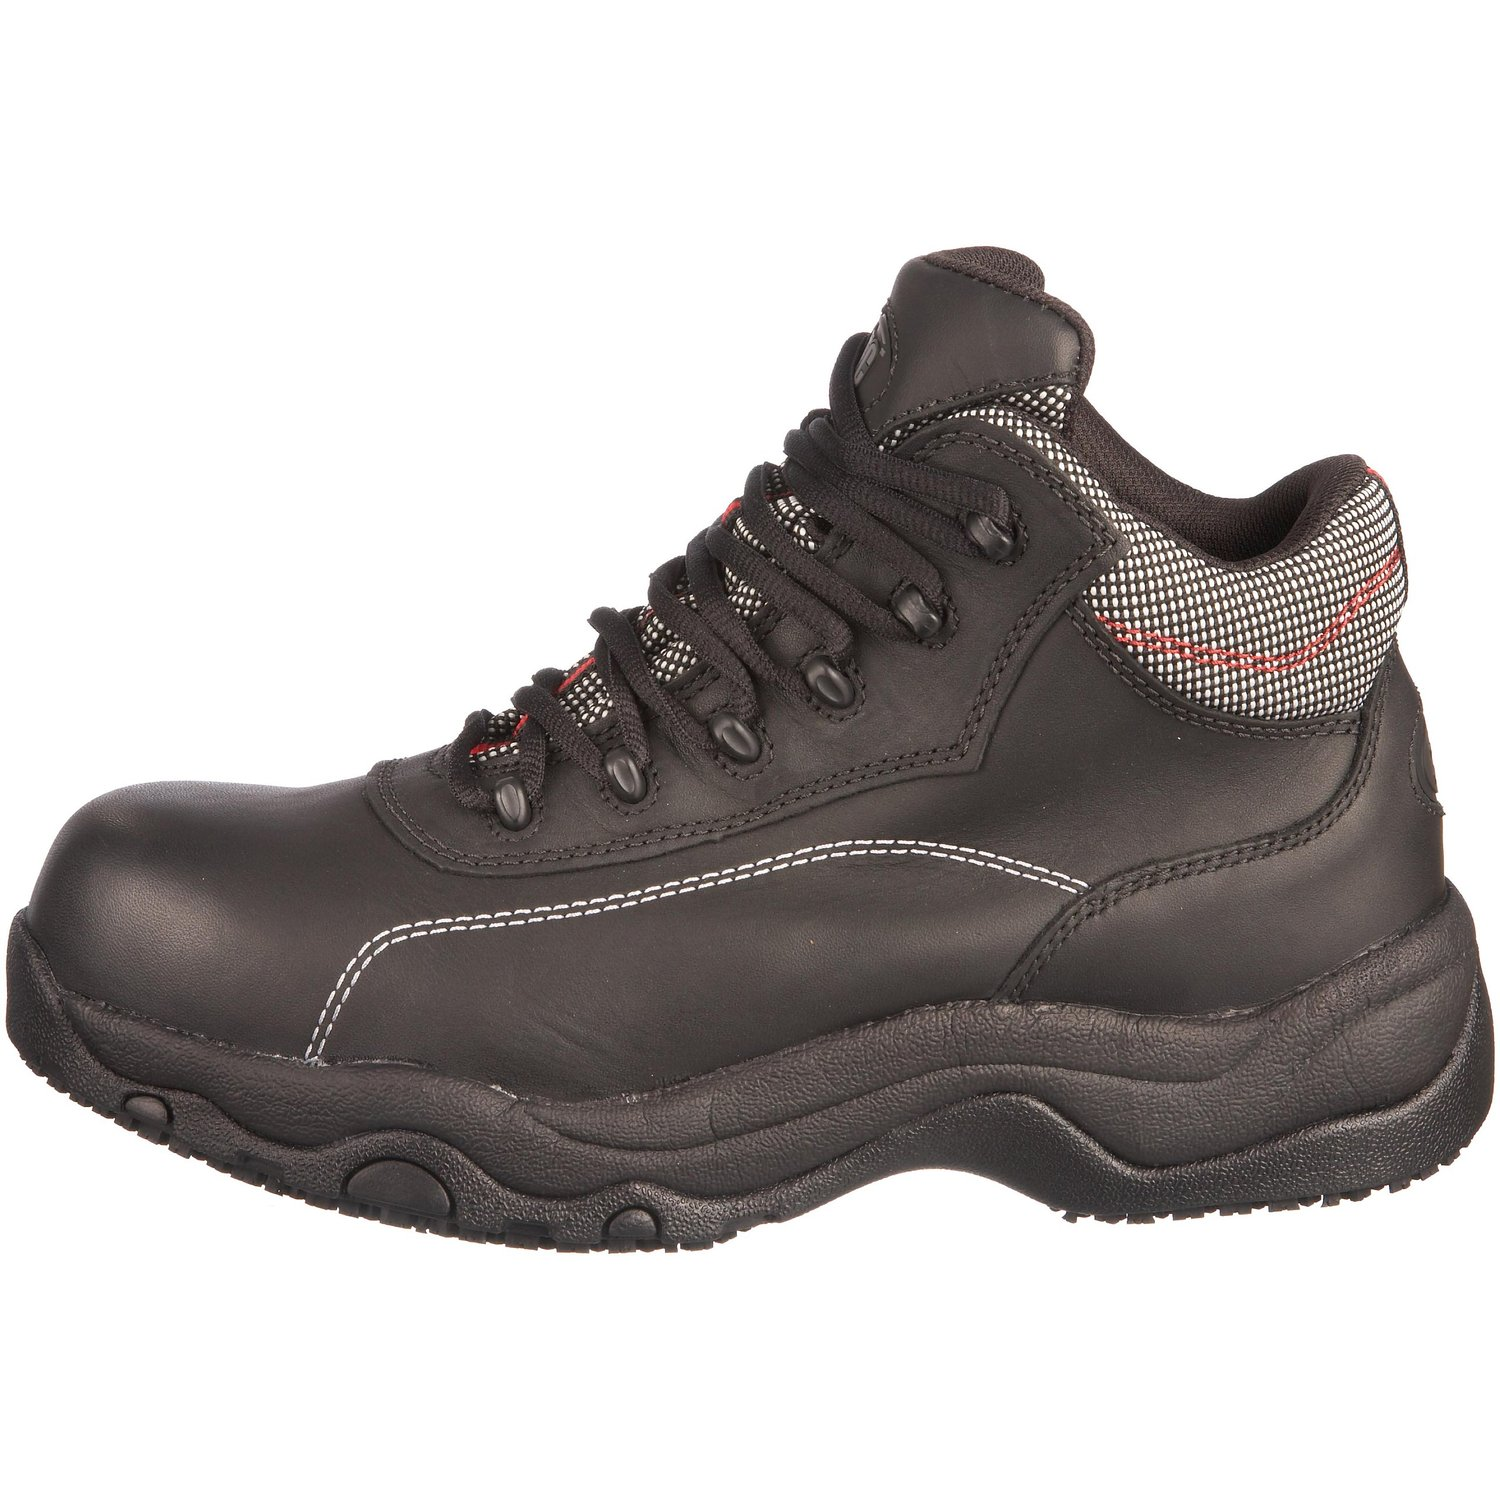 shoes for crews icon safety boots composite toe cap slip